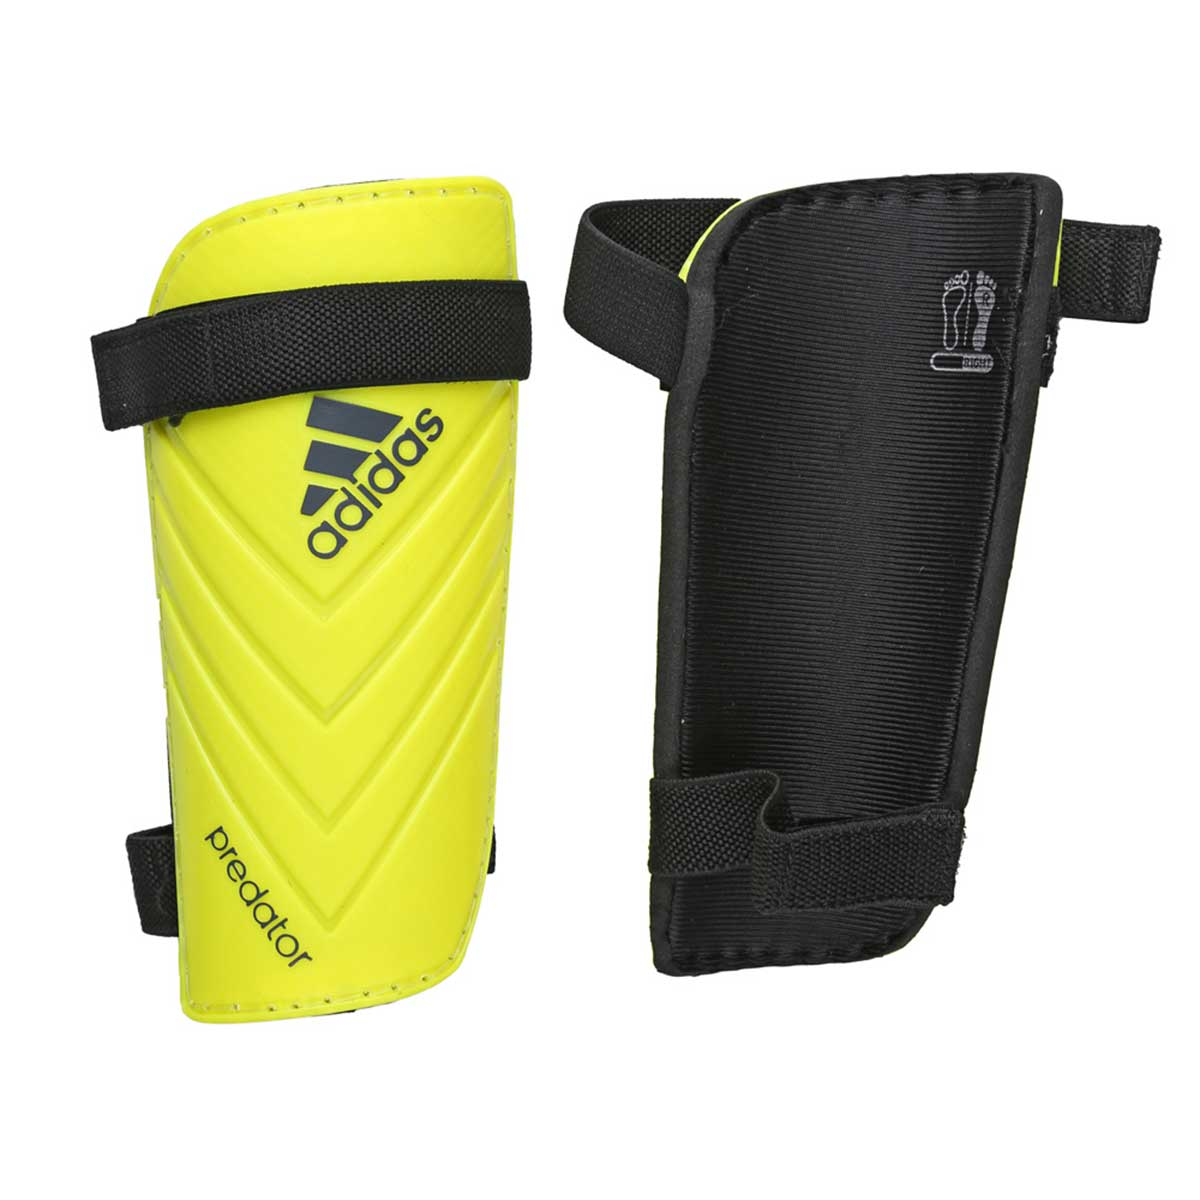 c63fd09c9 Buy Adidas Predator Lite Shin Guard Online India